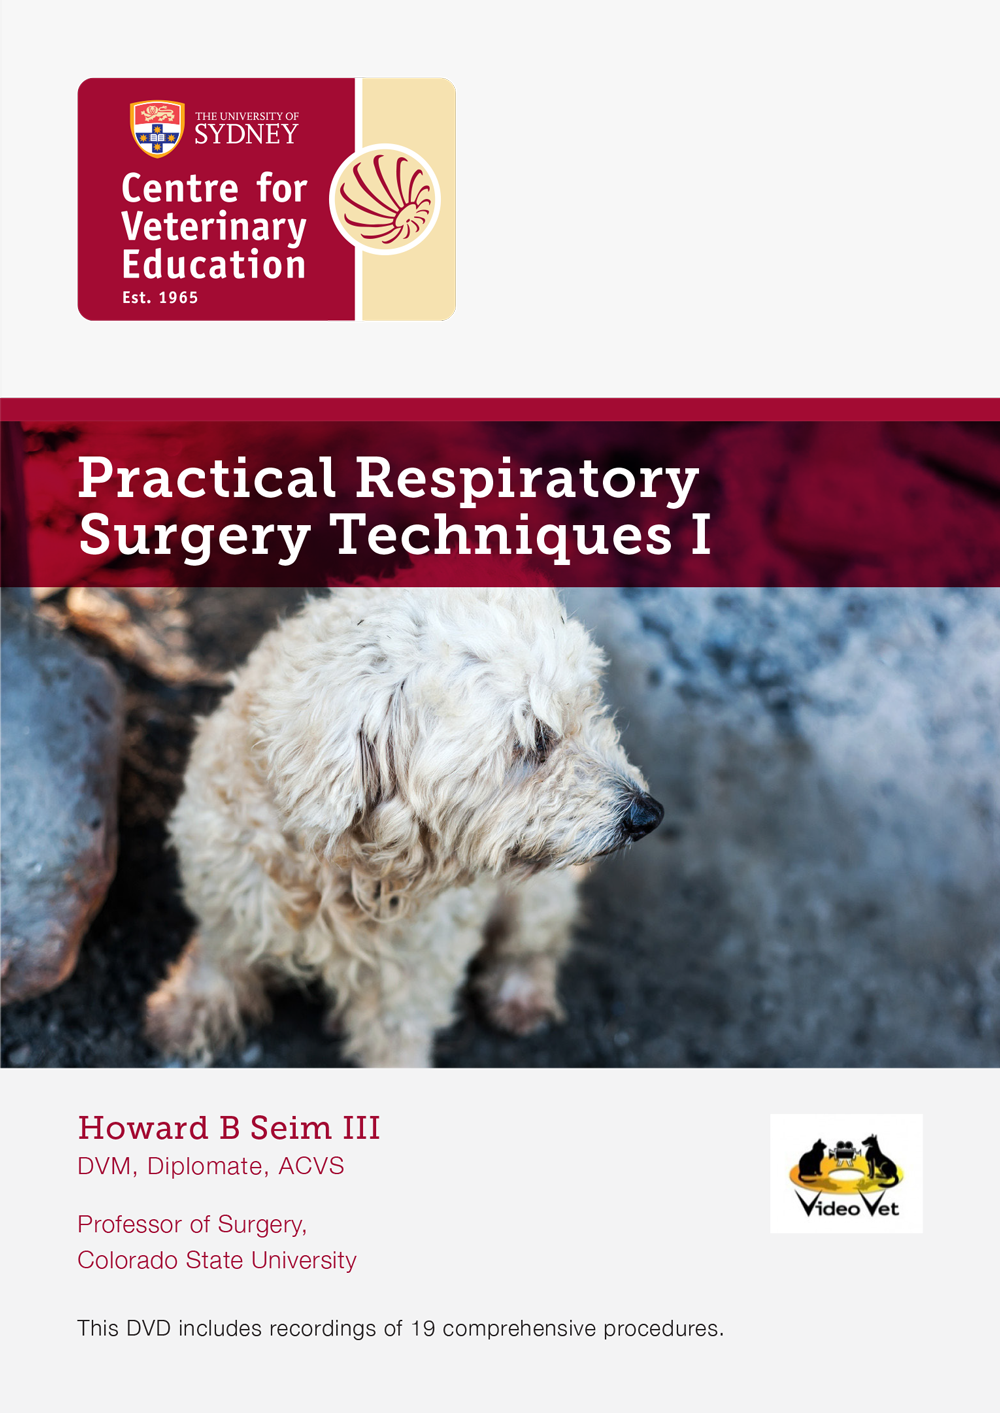 Practical Respiratory Surgery Techniques I (MP4)